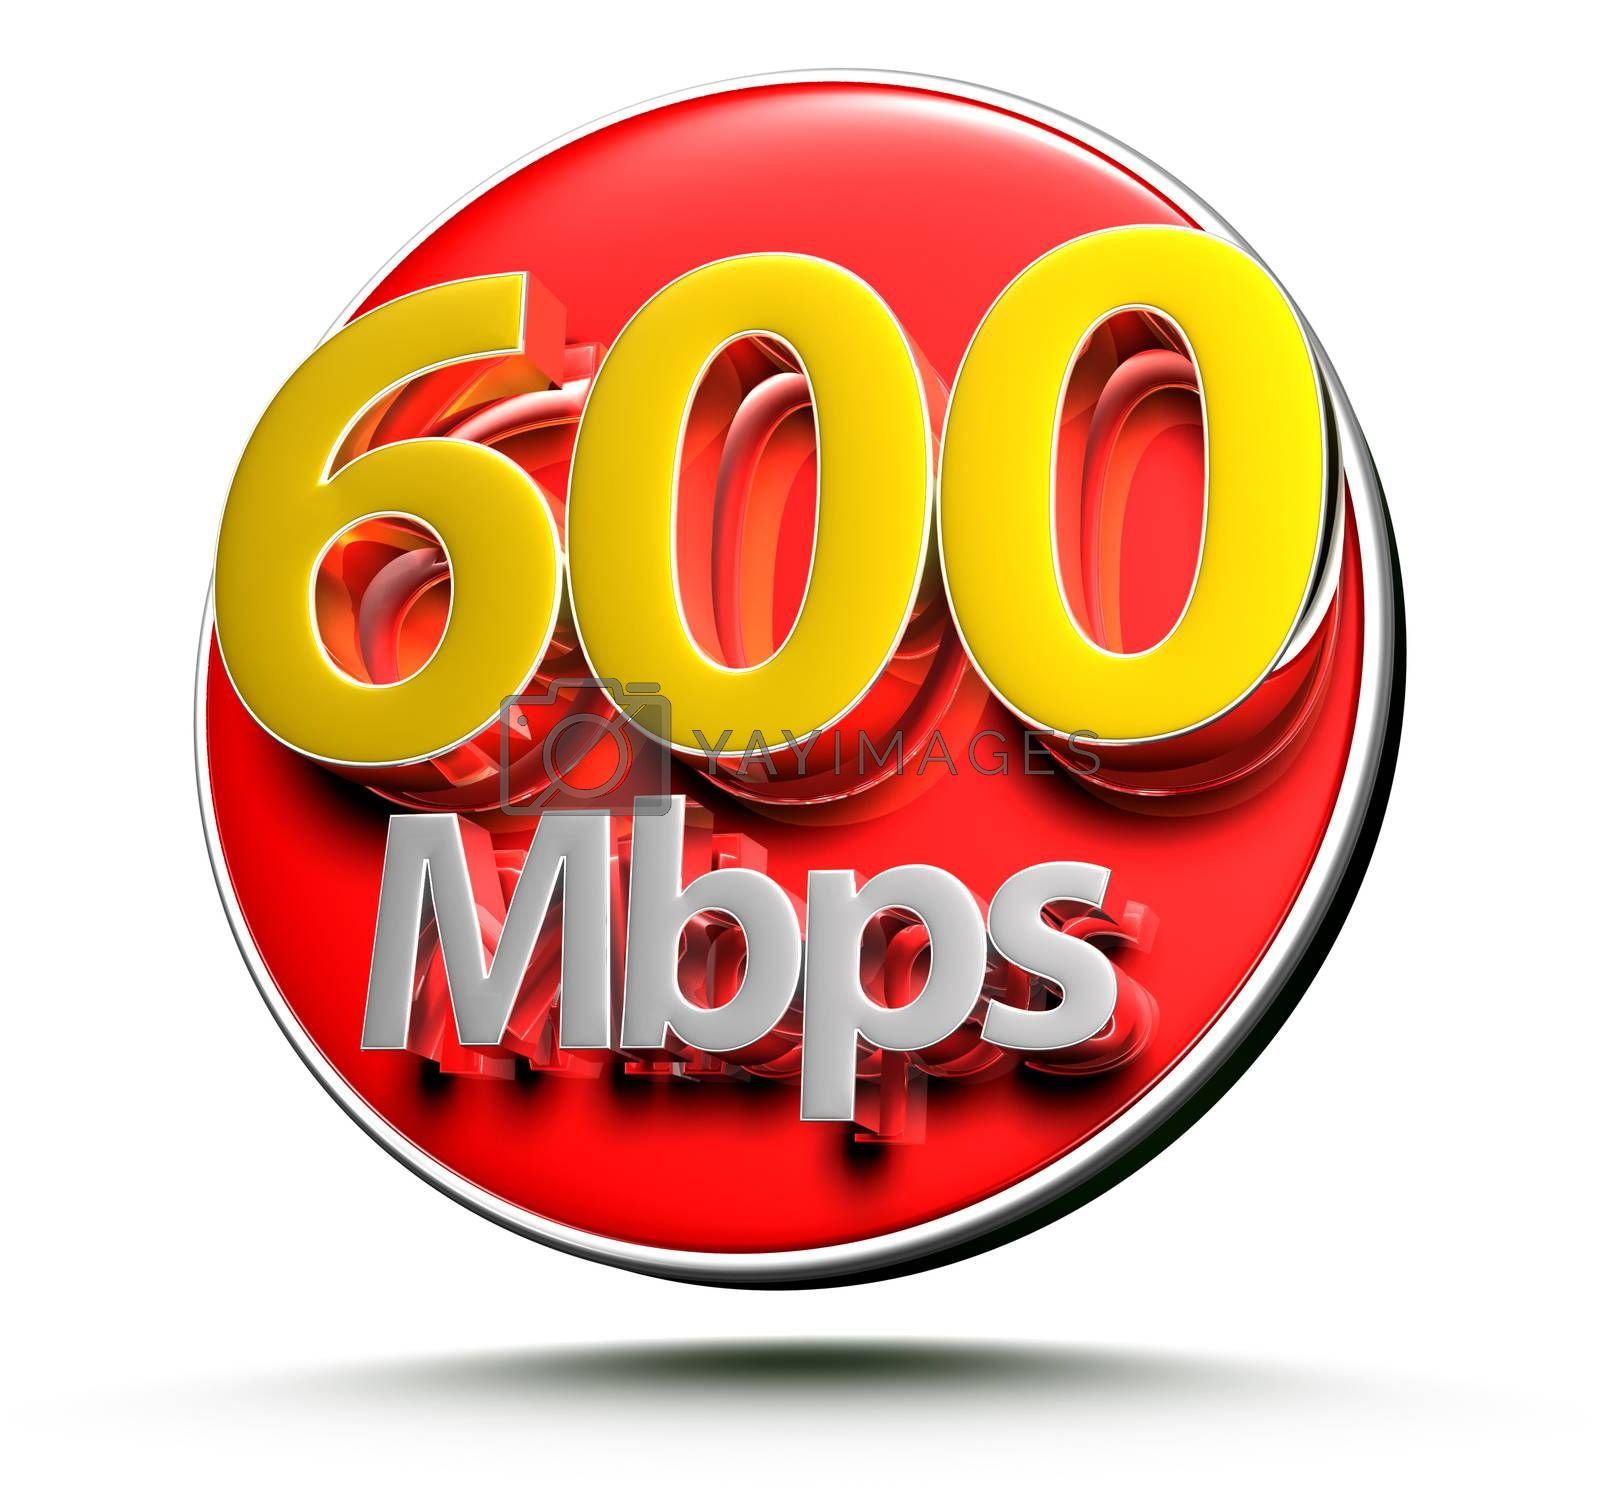 600 mbps 3d. by thitimon